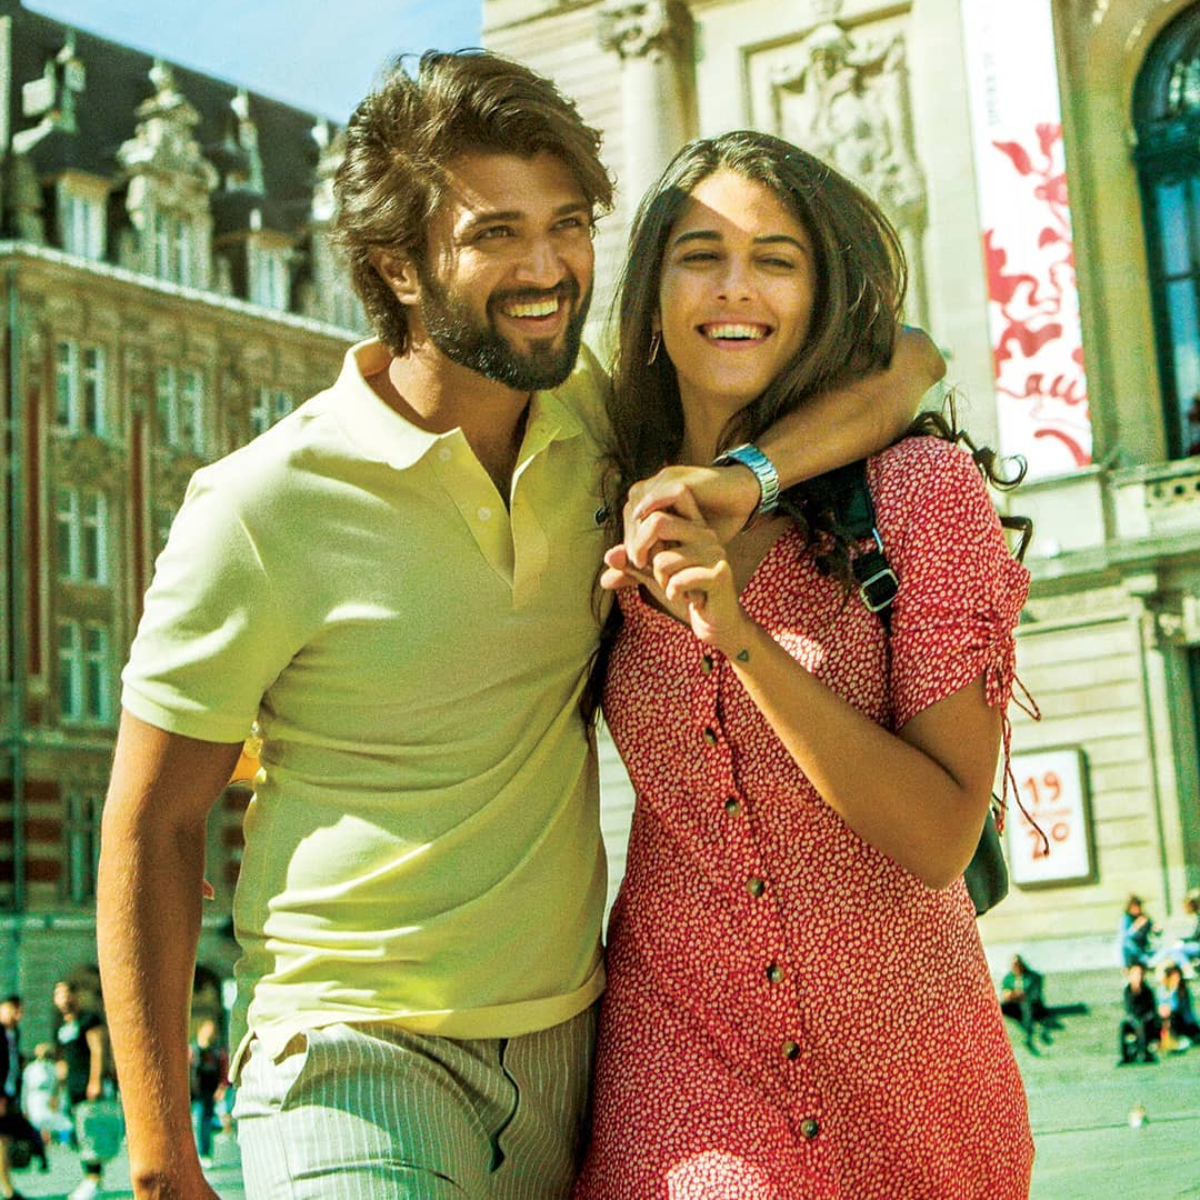 World Famous Lover Poster: Vijay Deverakonda introduces Izabelle Leite in an adorable way; Check it out